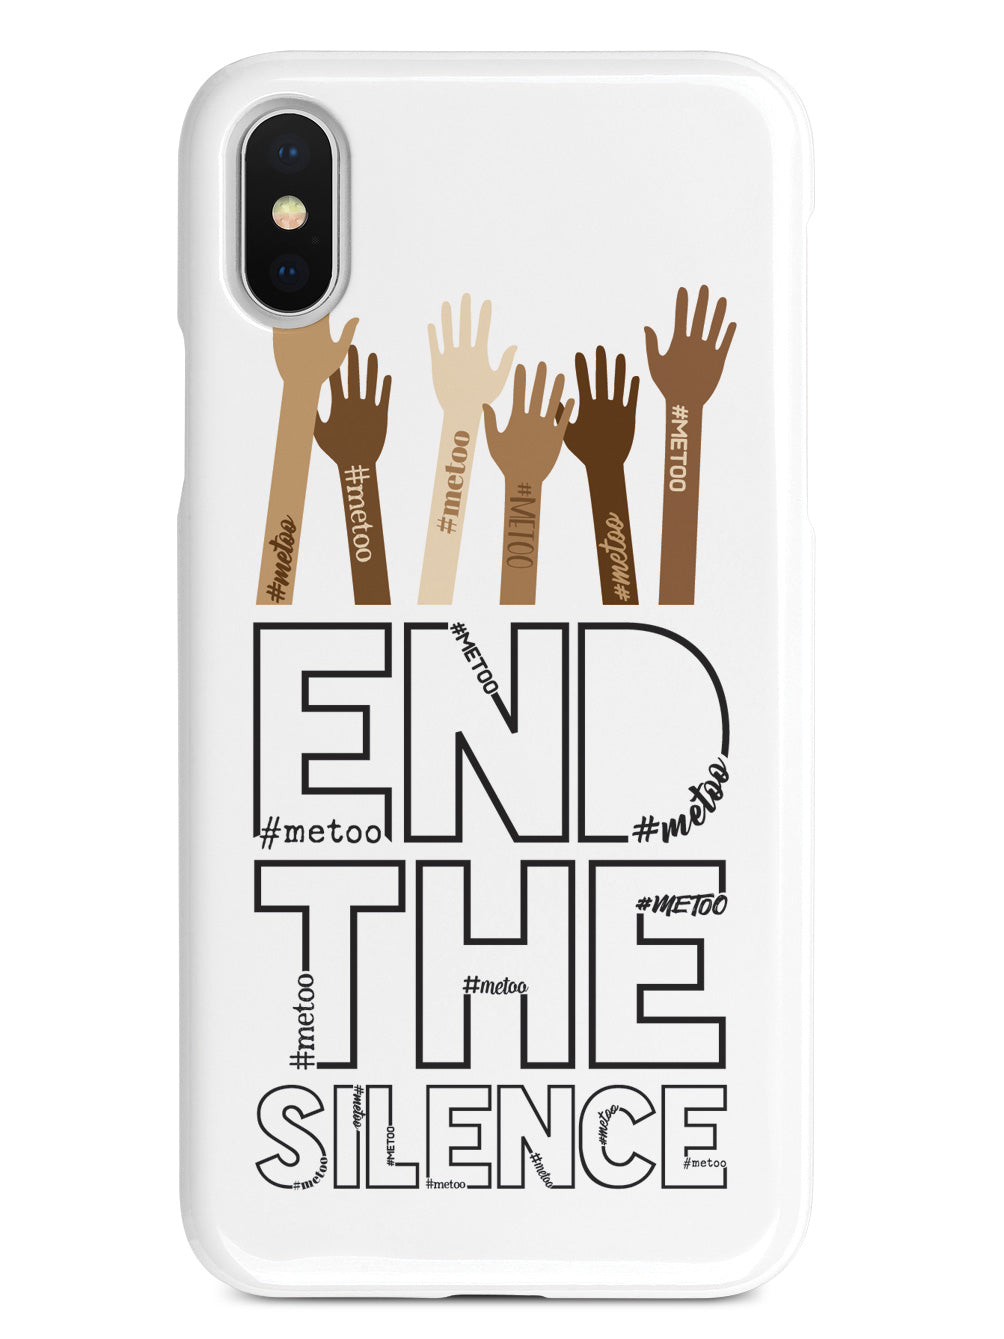 End the Silence - #METOO Movement - White Case